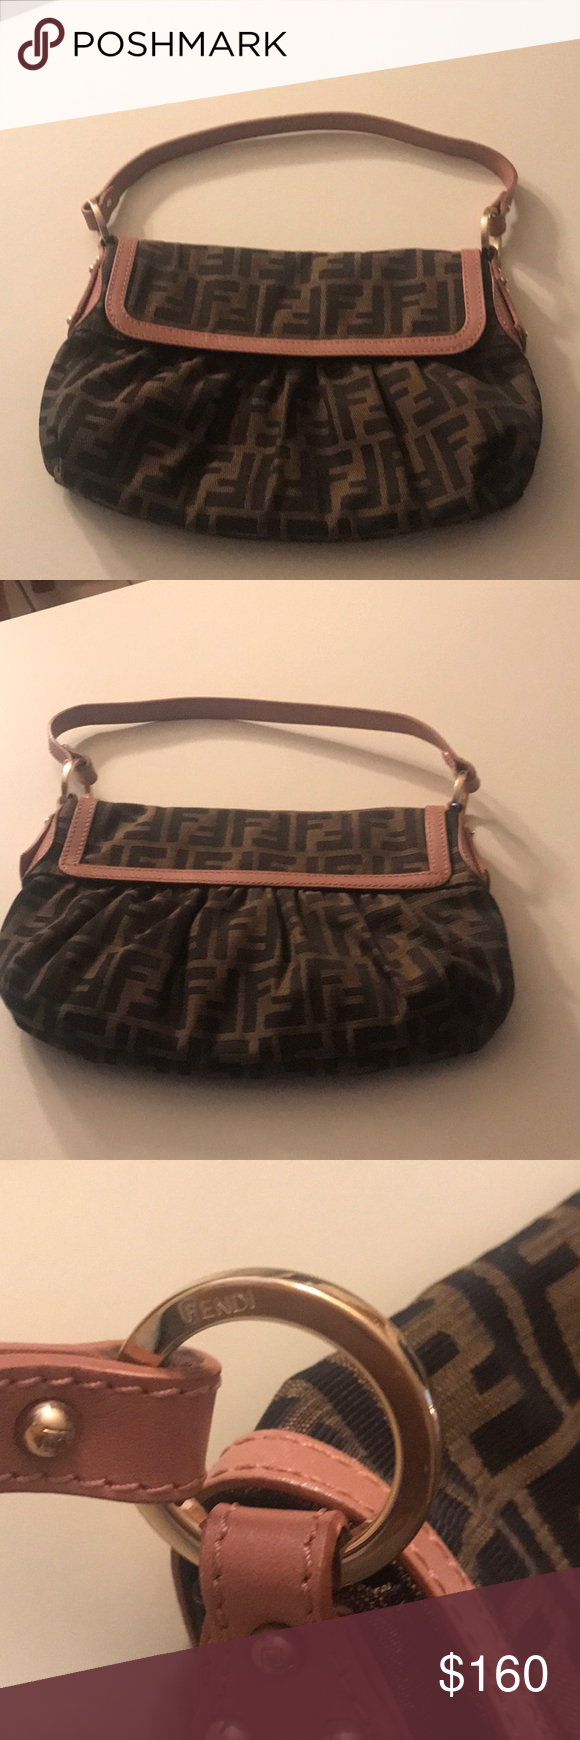 8f013326361 Fendi Zucca Bag Fendi Zucca monogram canvas bag. Serial number is  2415-8BR353-JWU-039. A few marks on the lining but otherwise in excellent  condition.